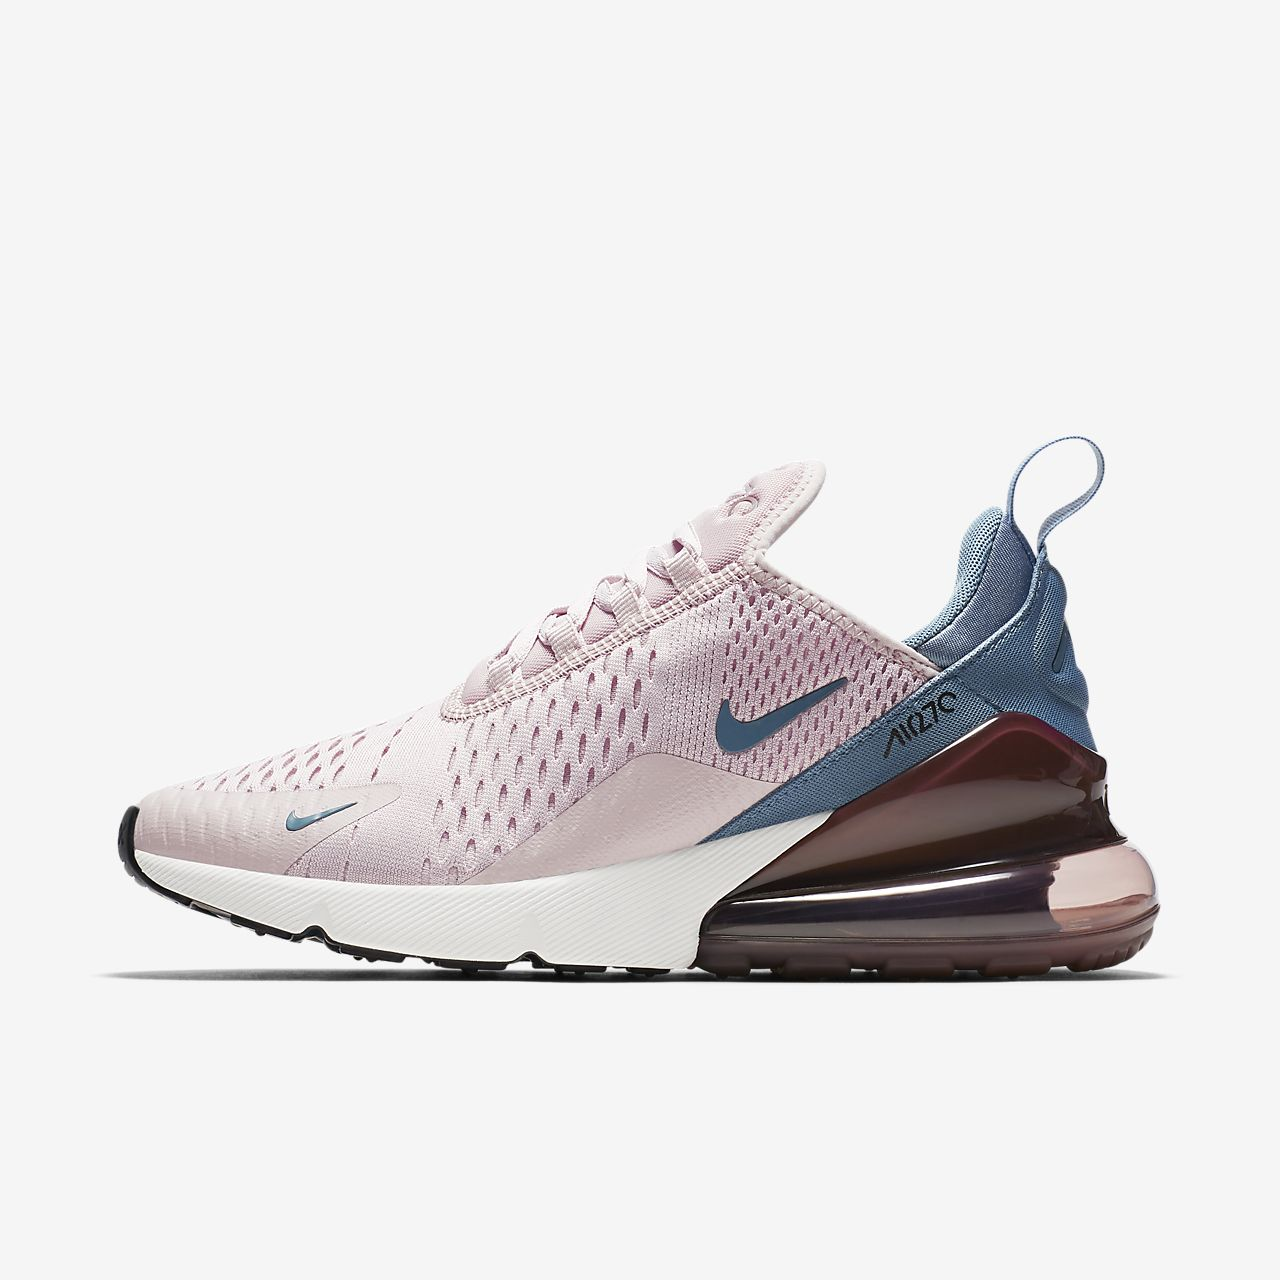 cheaper 54a61 a13ca Nike Air Max 270